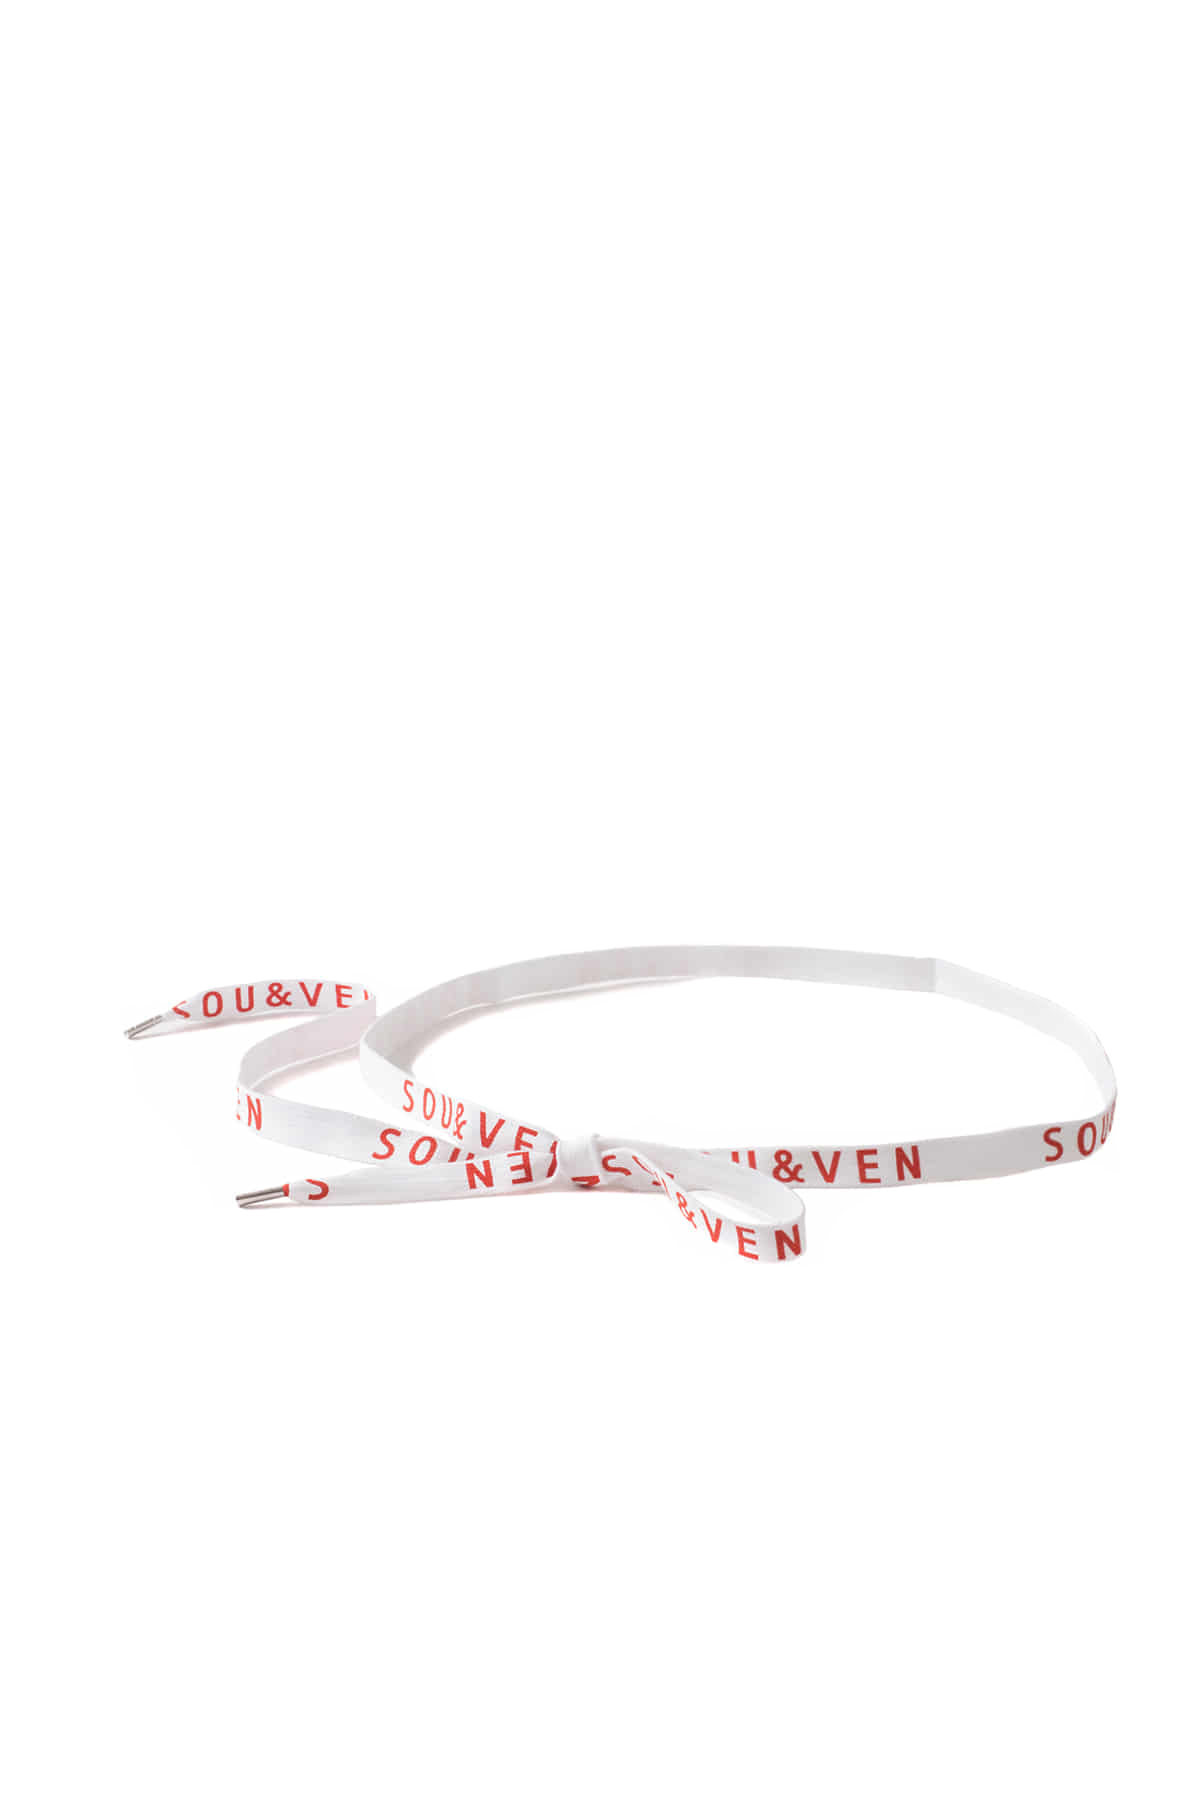 SOU&VEN : Shoelace Belt (White)